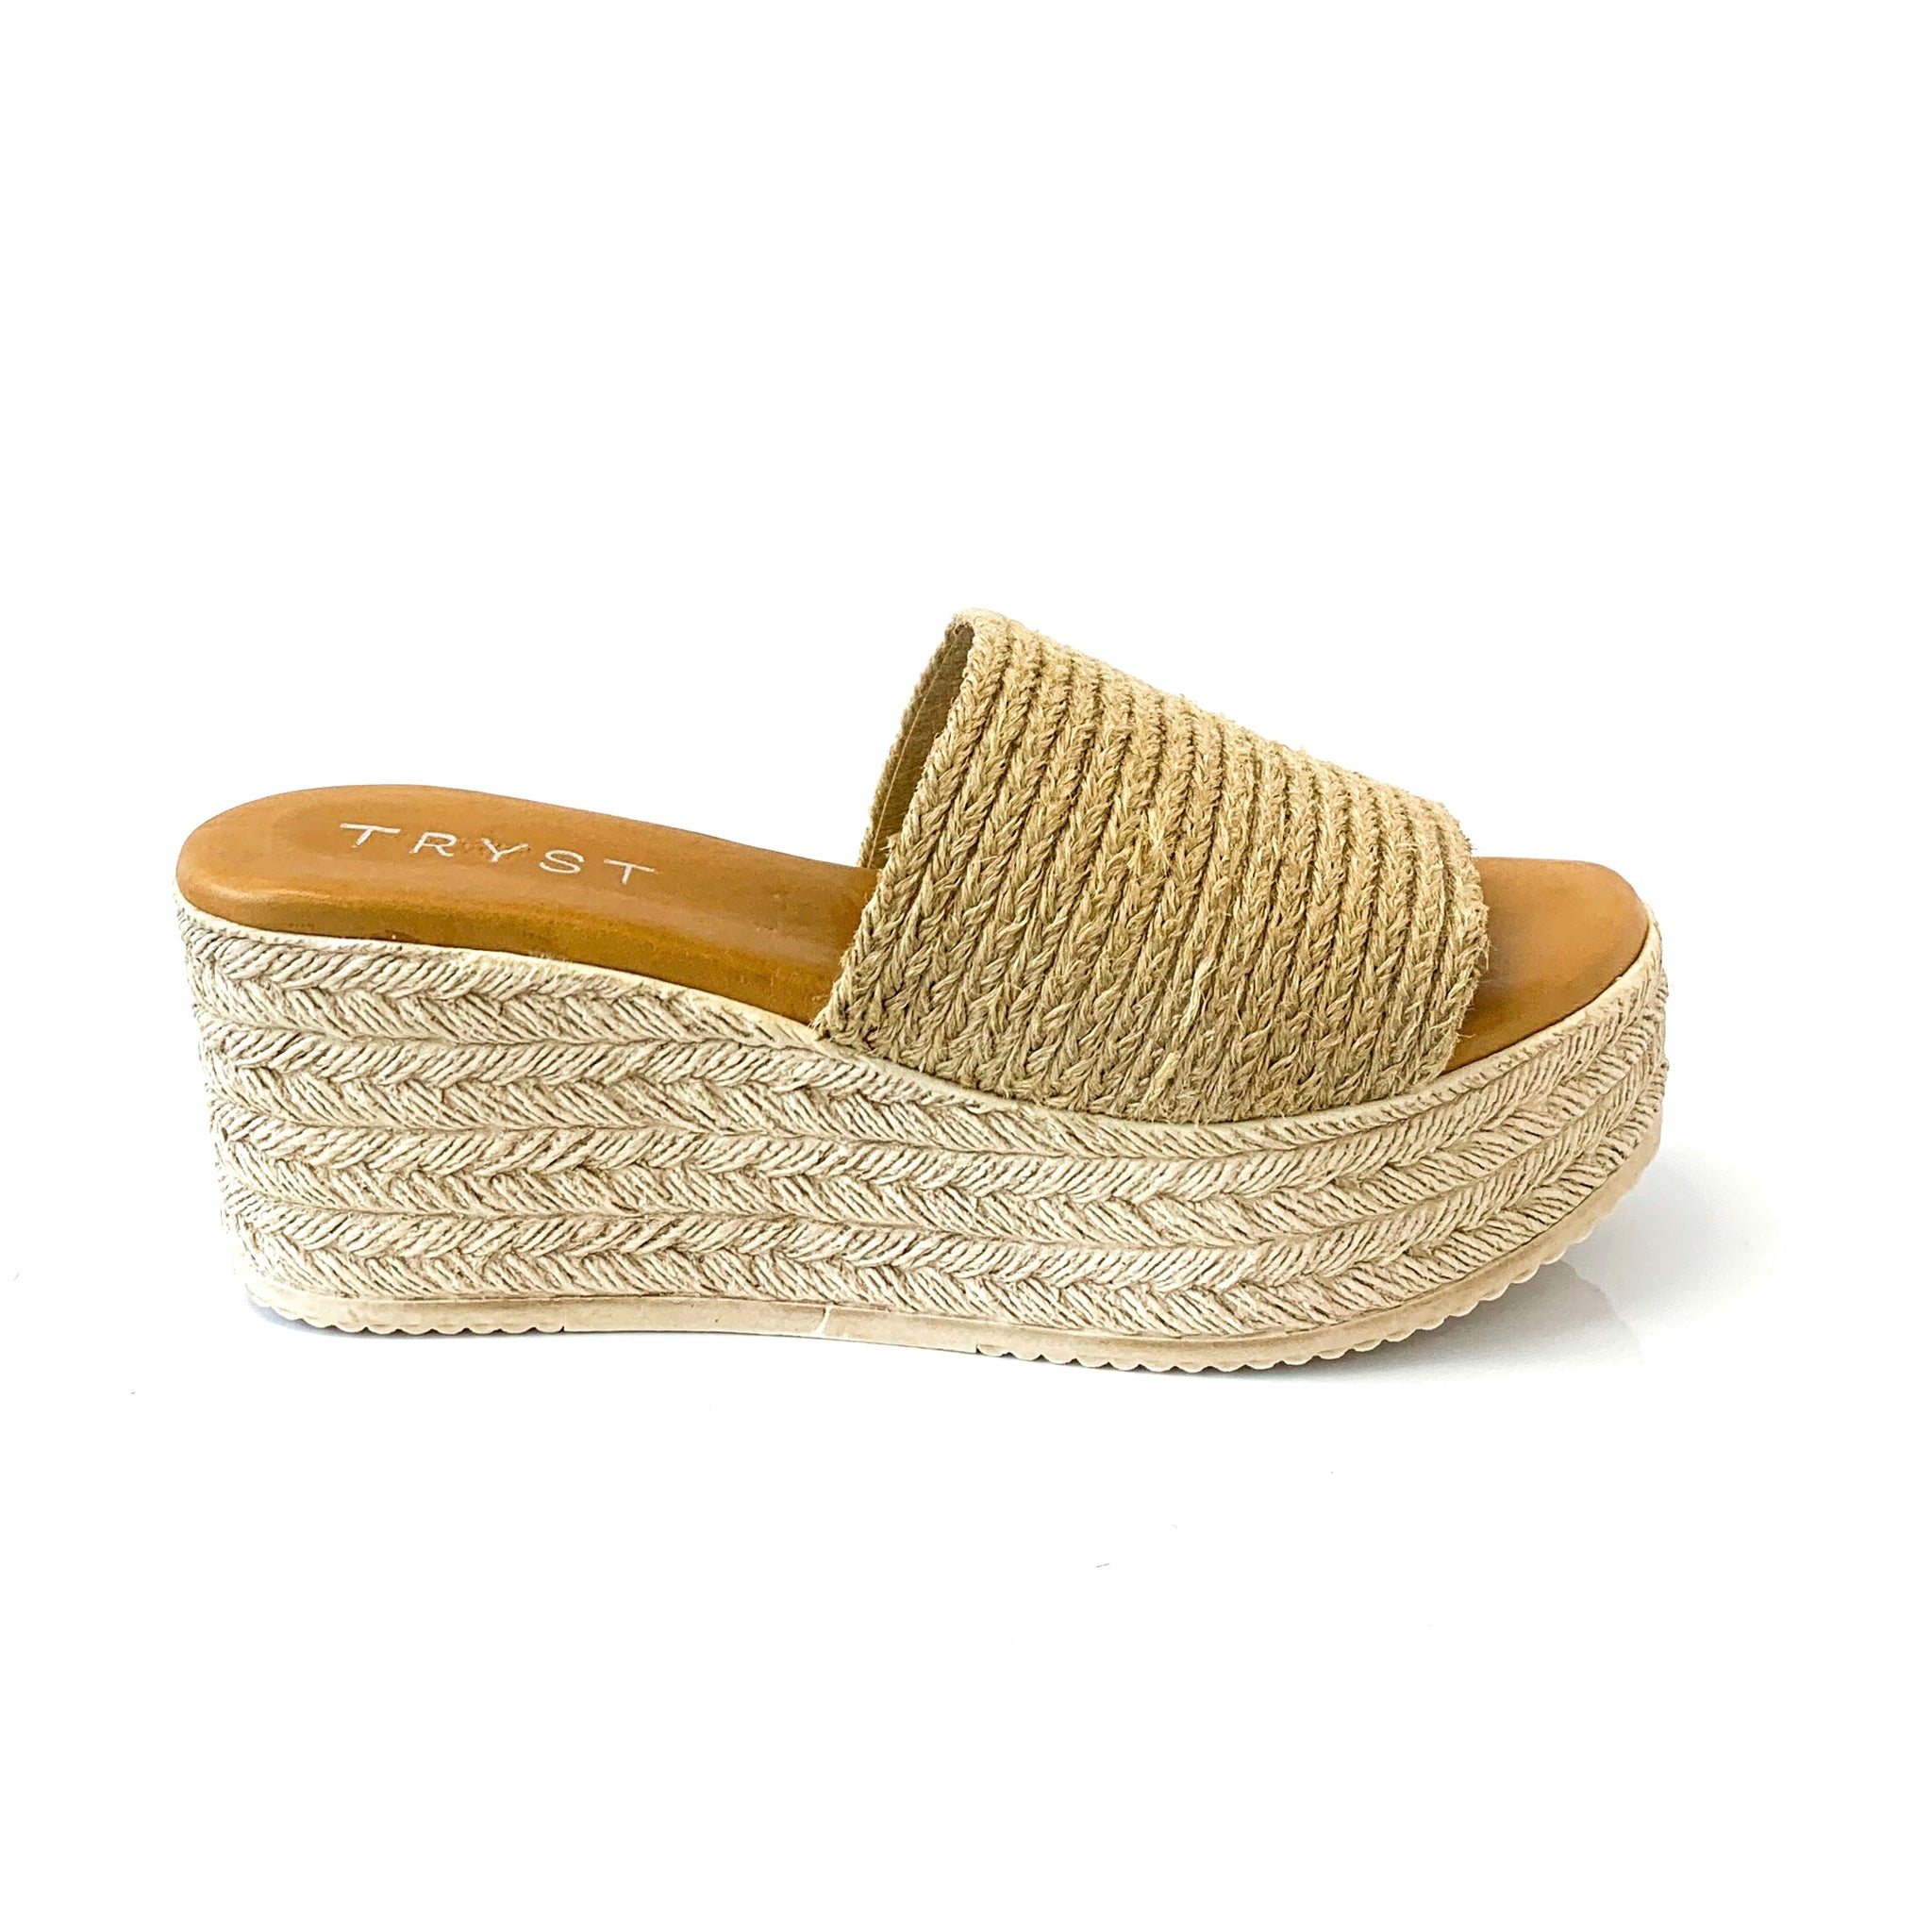 LAZ | Platform Beige Sandals with Thick Strap - TrystShoes